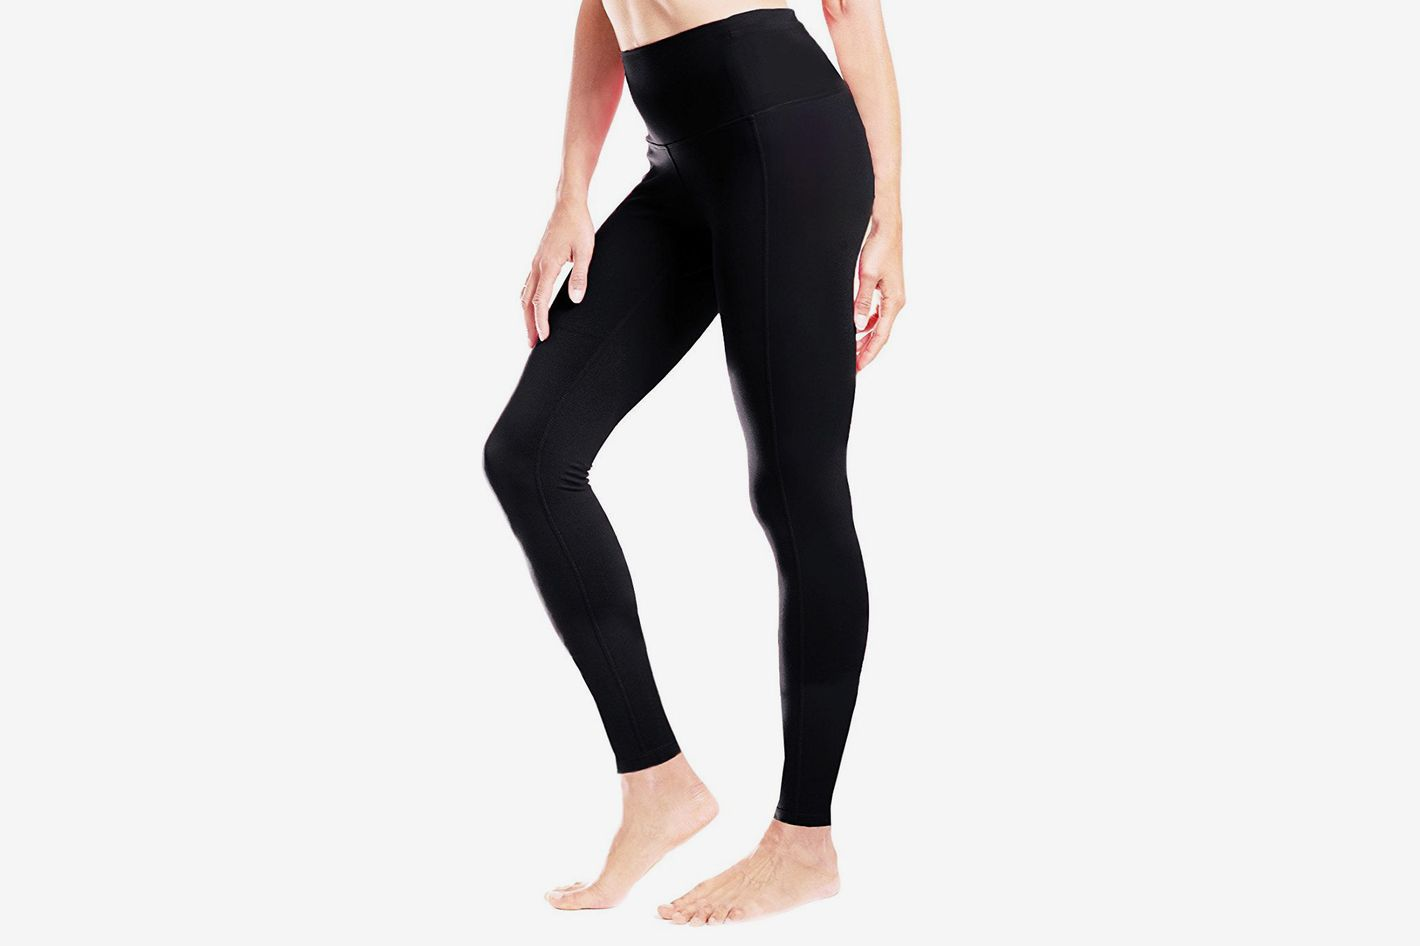 4c27ad107b3c Yogipace Petite Length High Waisted Yoga Leggings